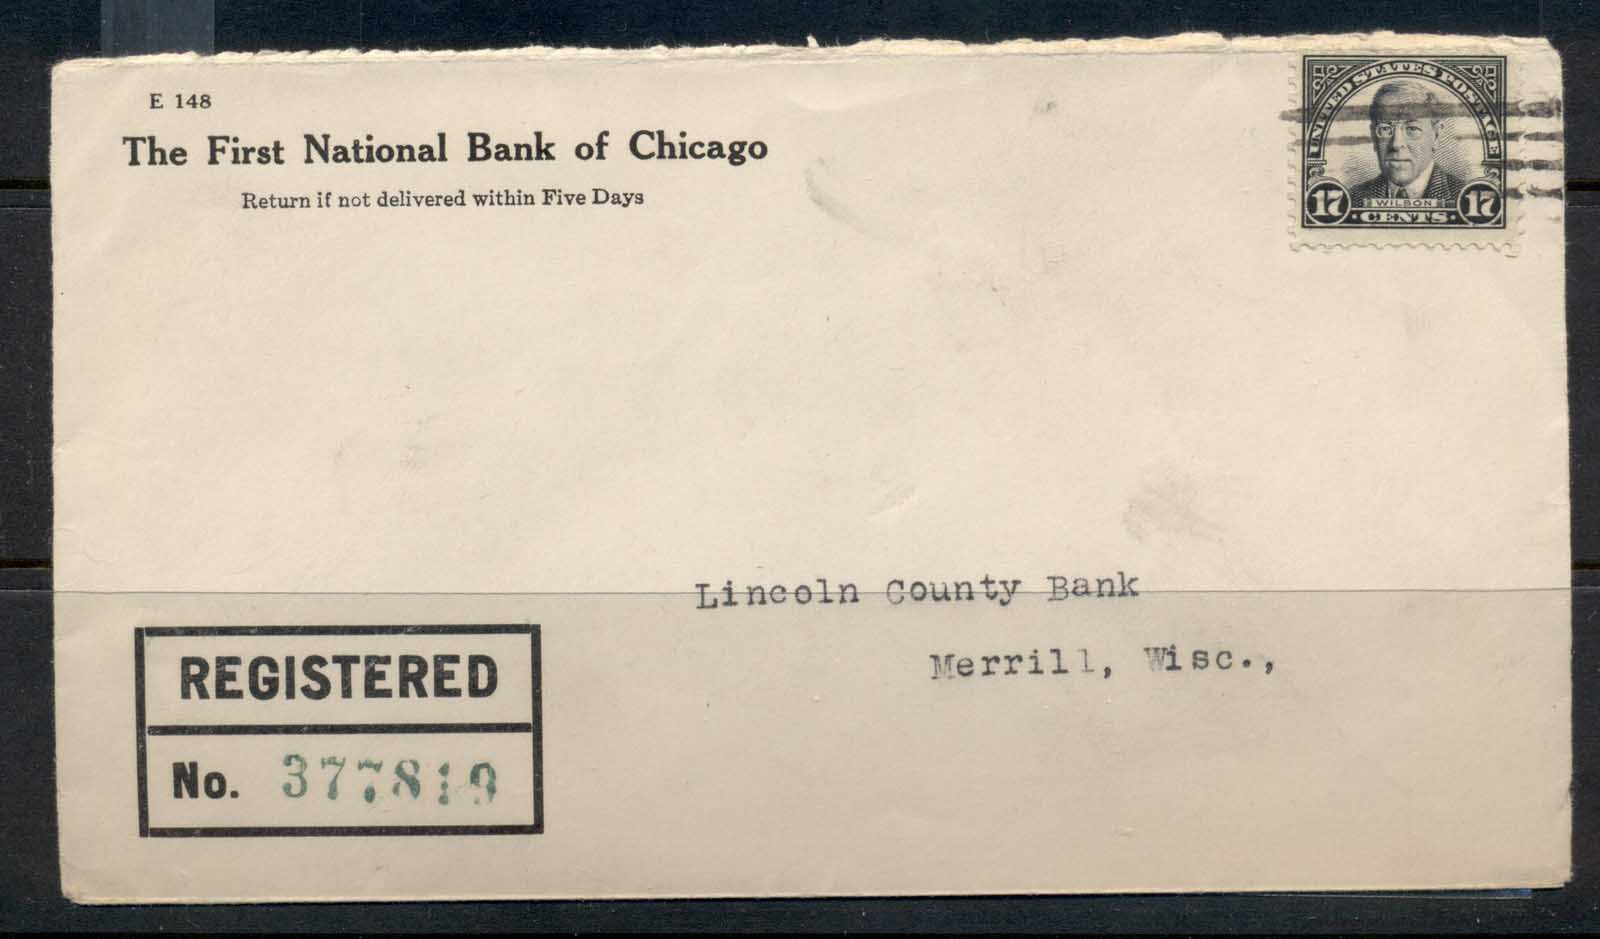 USA 1922-38 Fourth Bureau Registered First National bank CC 17c Wilson cover